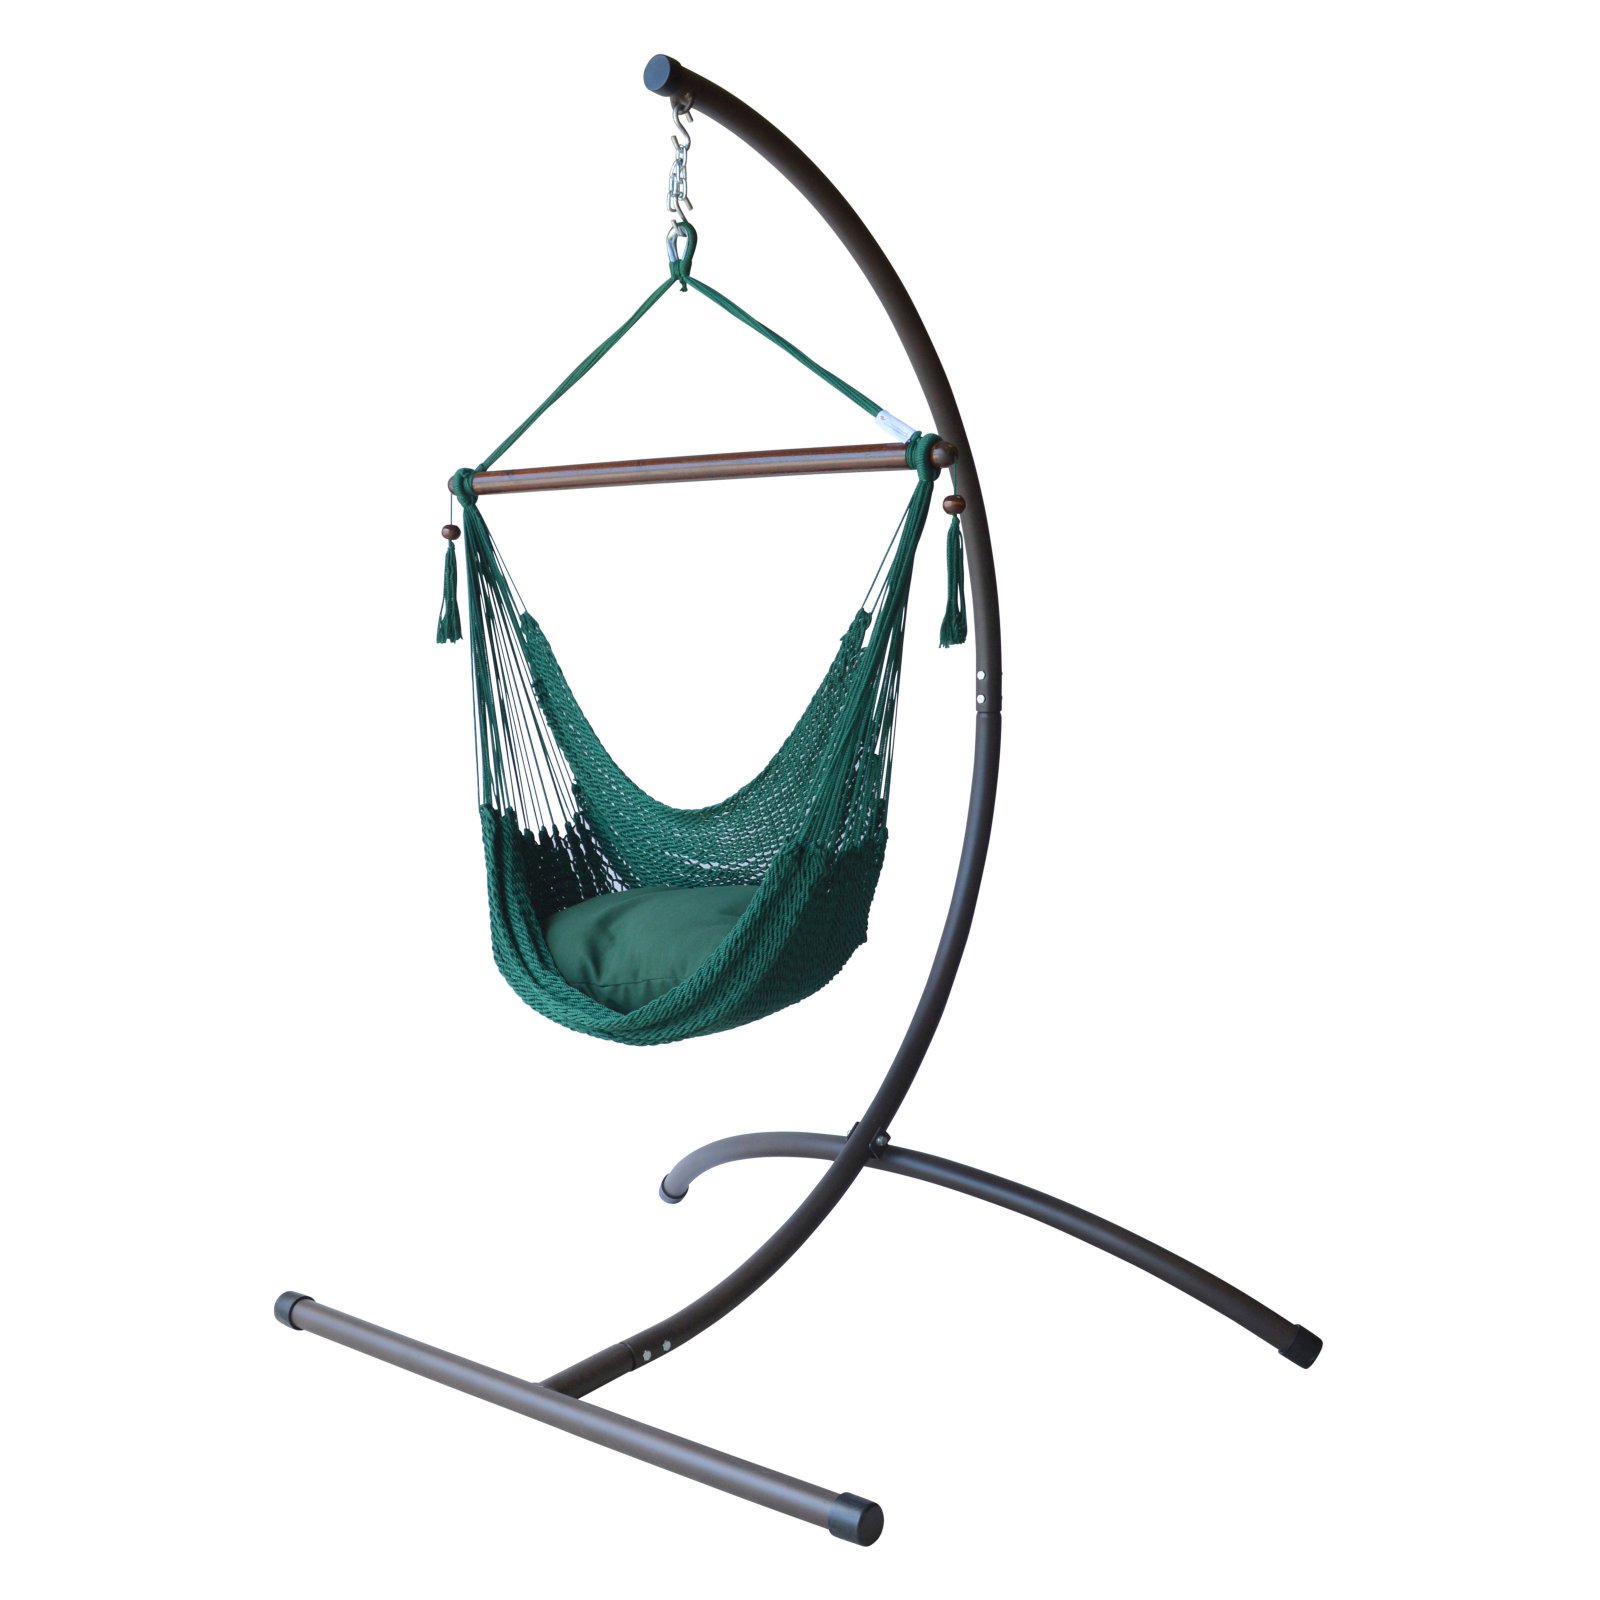 Caribbean Hammocks Chair with Metal Stand